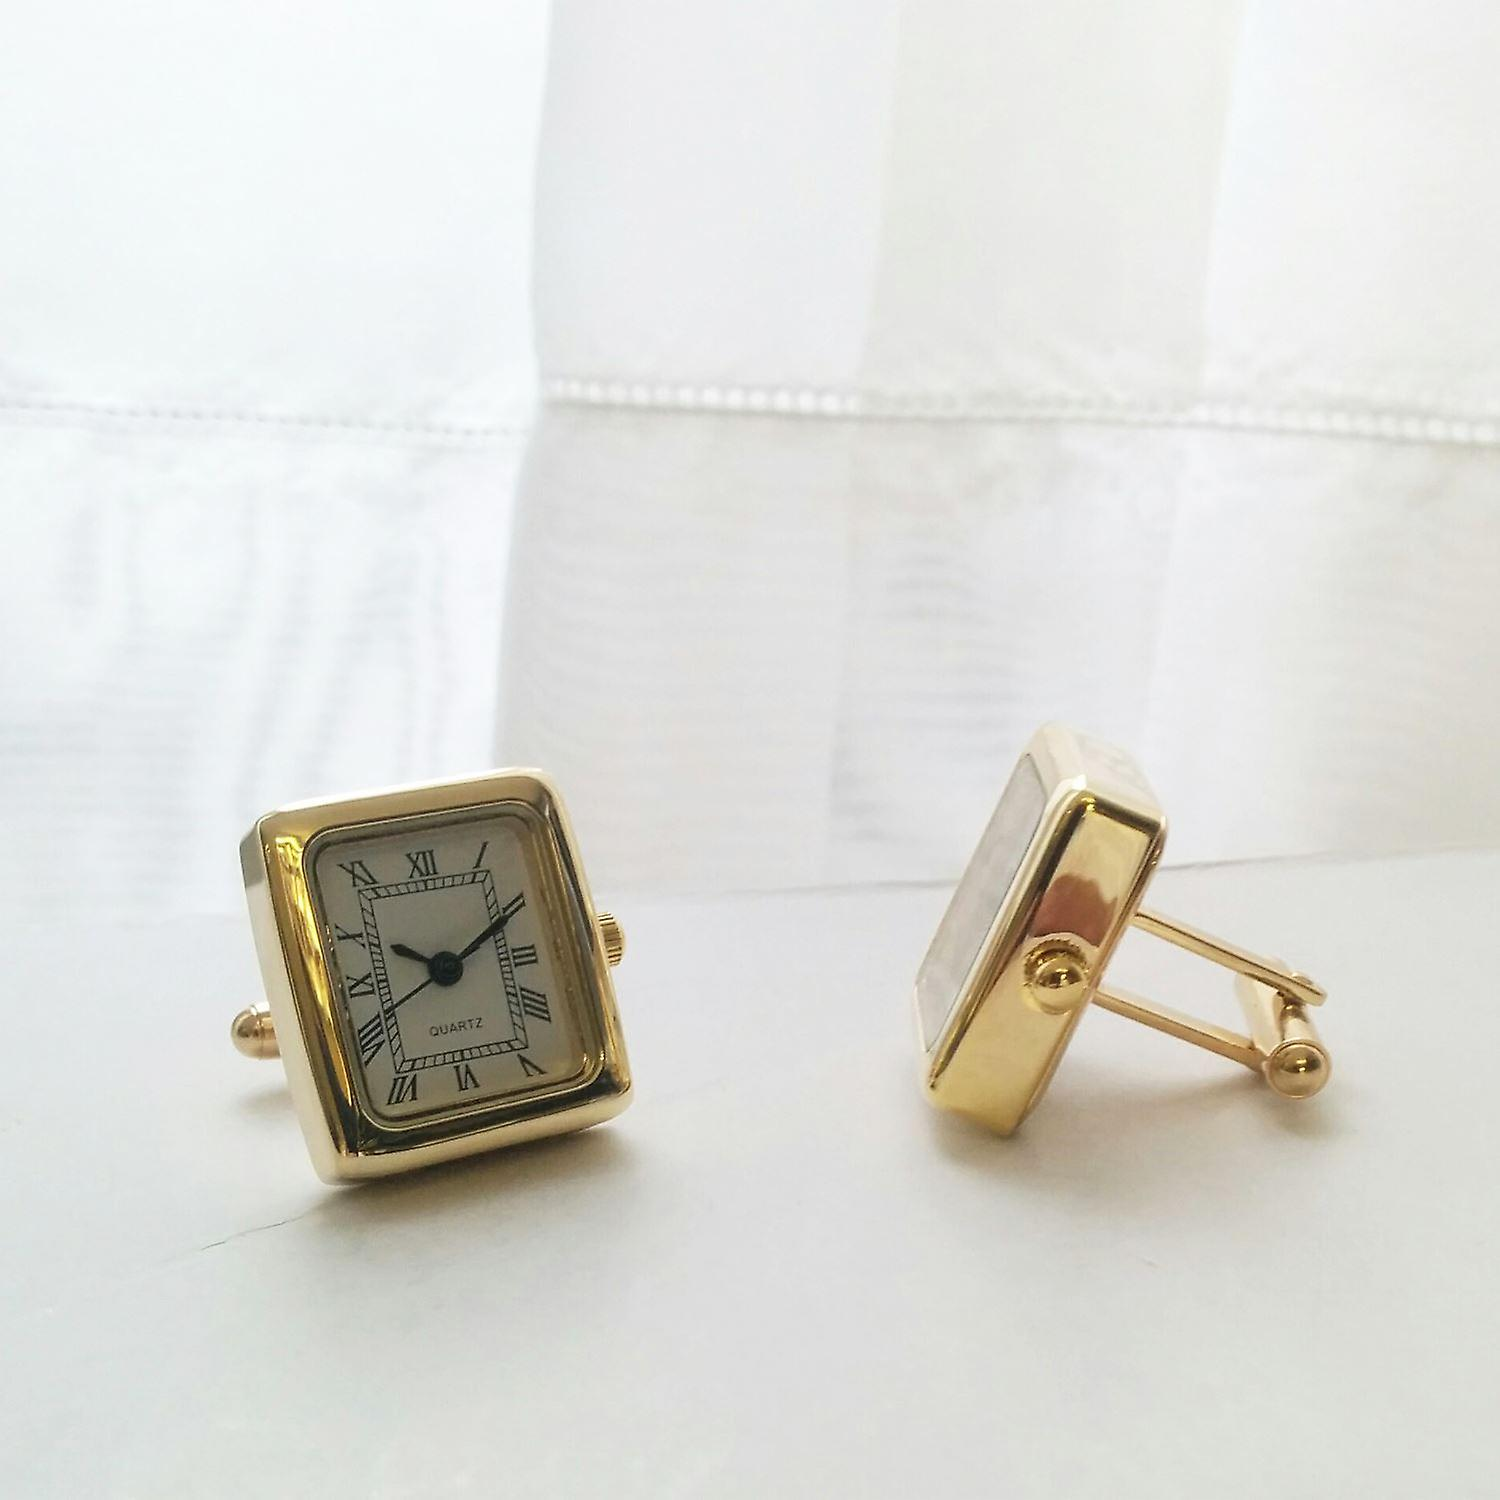 Mens Ladies Working Gold Tone Square Clock Watch Cufflinks Wedding Formal Business